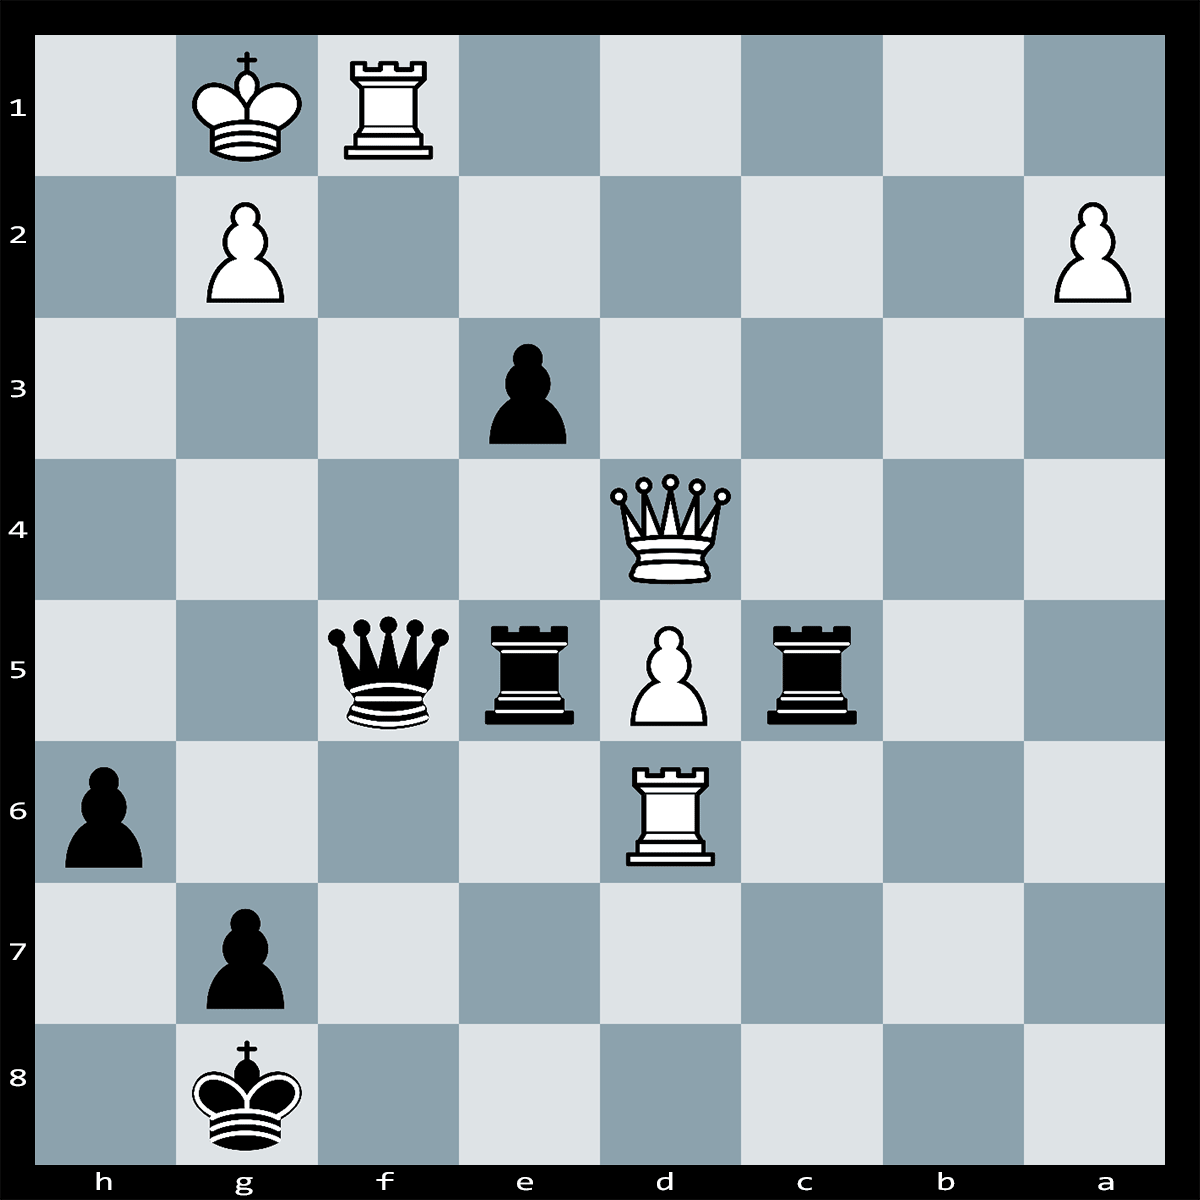 Find the Best Move, Black to Move